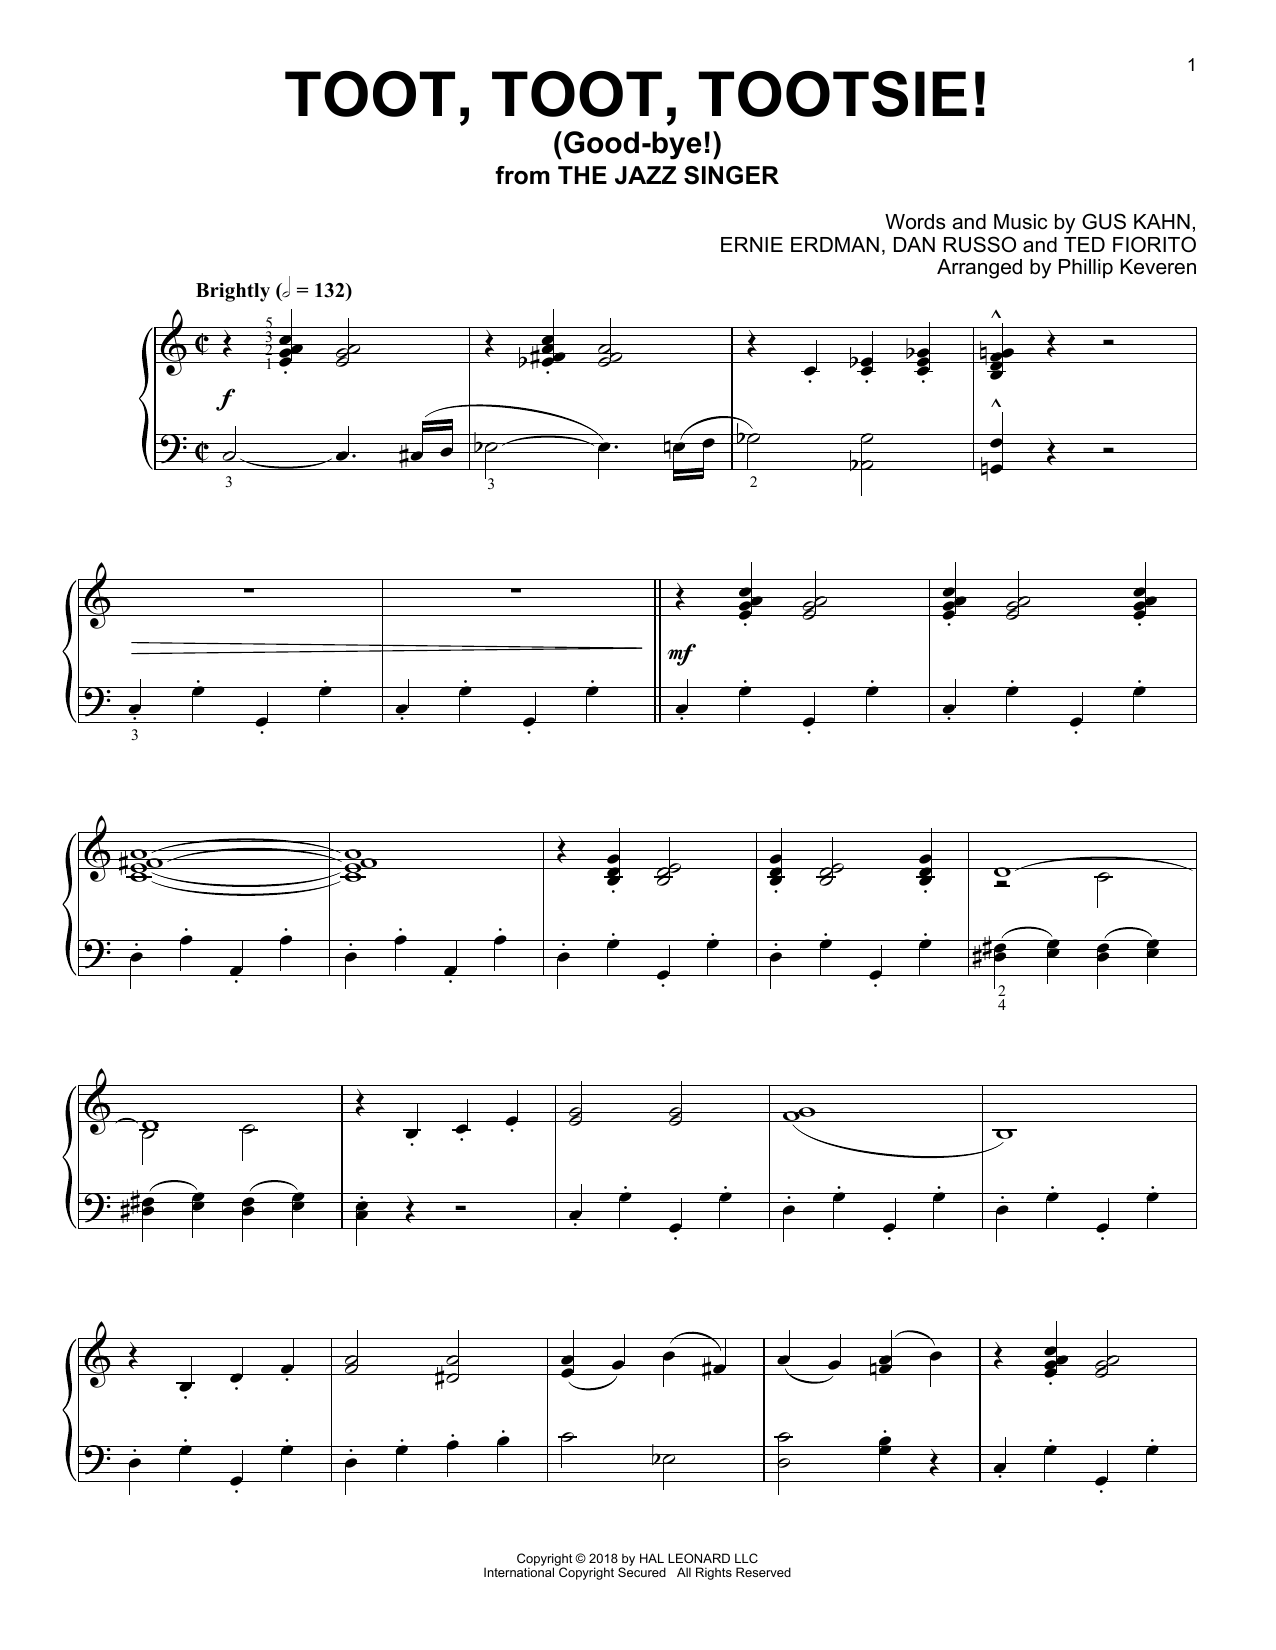 Gus Kahn Toot, Toot, Tootsie! (Good-bye!) [Jazz version] (arr. Phillip Keveren) sheet music notes and chords. Download Printable PDF.